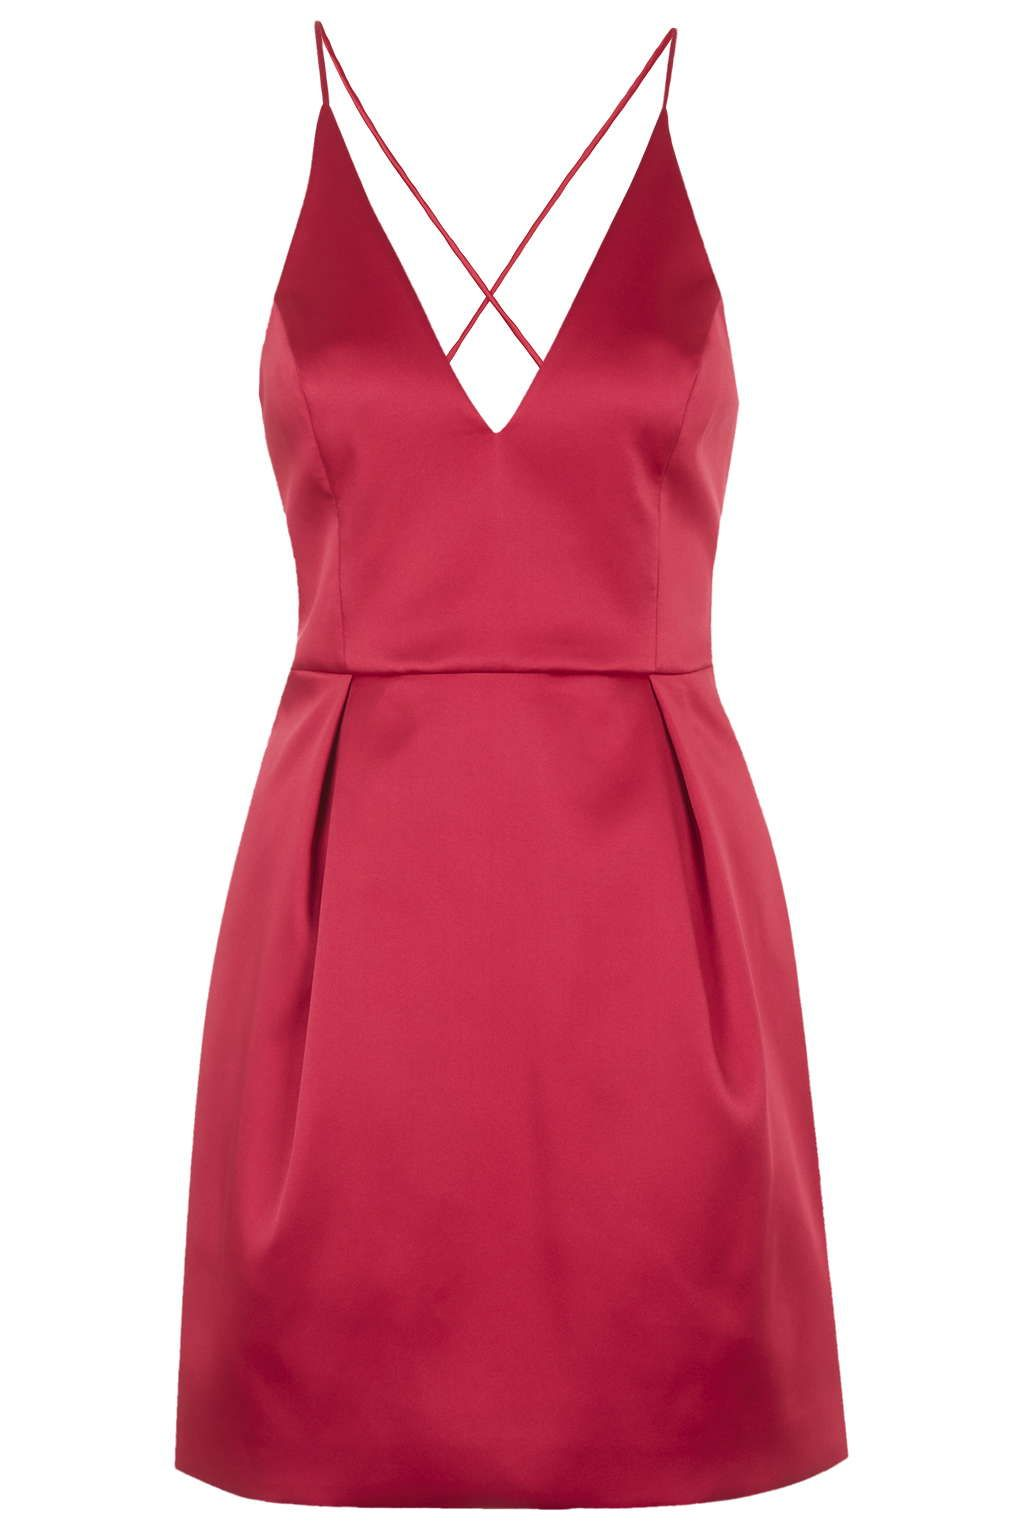 Charting: 10 Red Dresses For Date Night | Topshop dresses, Topshop ...